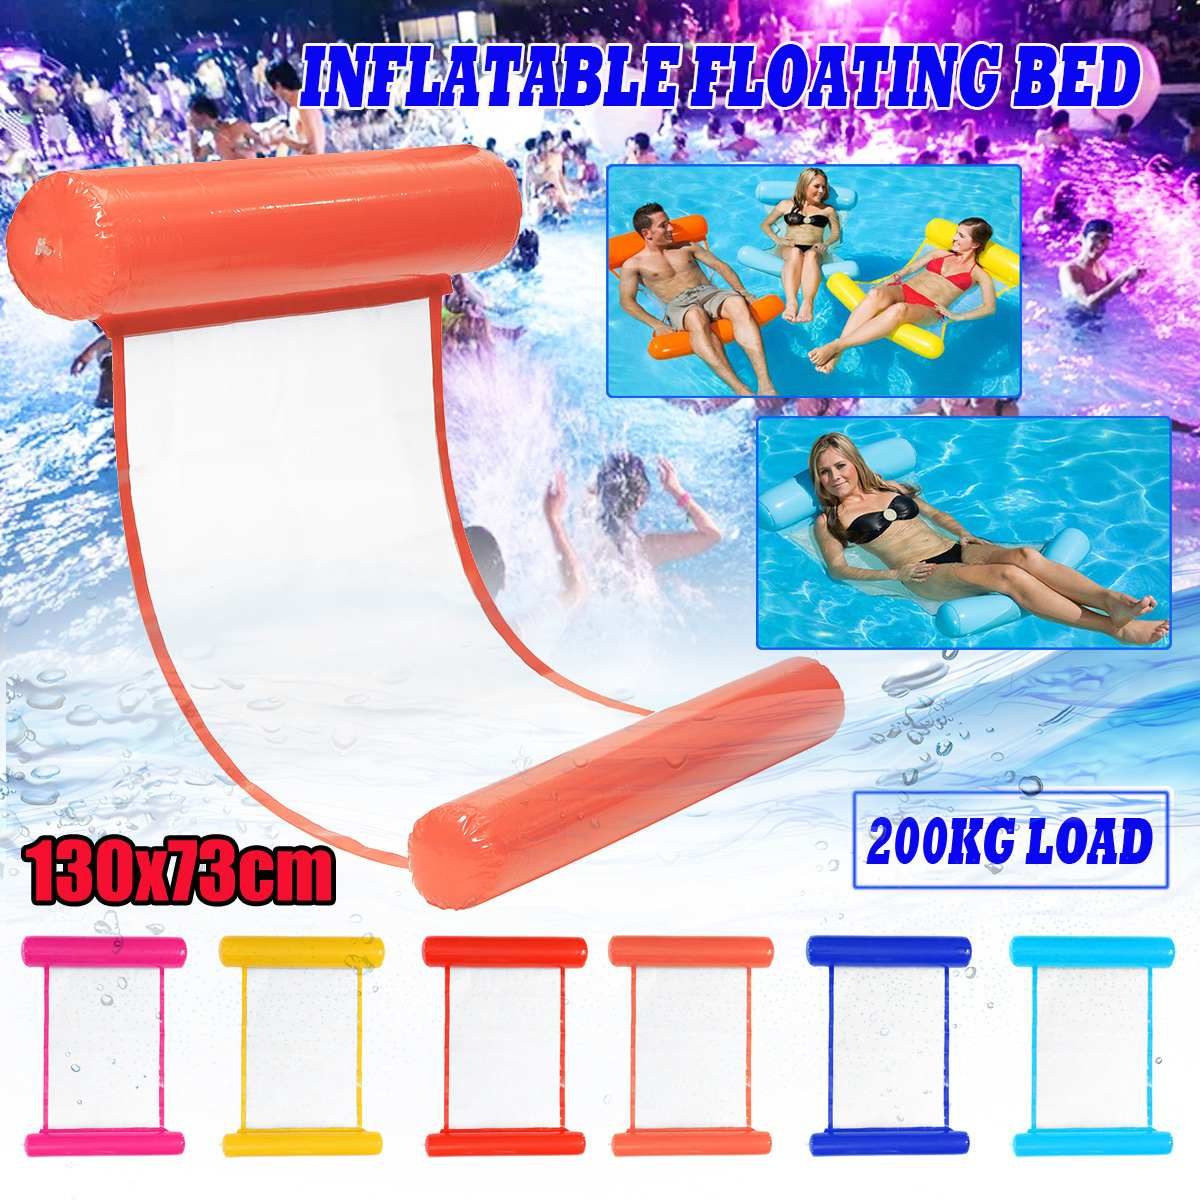 Inflatable Pool Floating Water Hammock Air Mattress Float Lounger Floating Bed Chair Swimming Pool Inflatable Hammock Bed